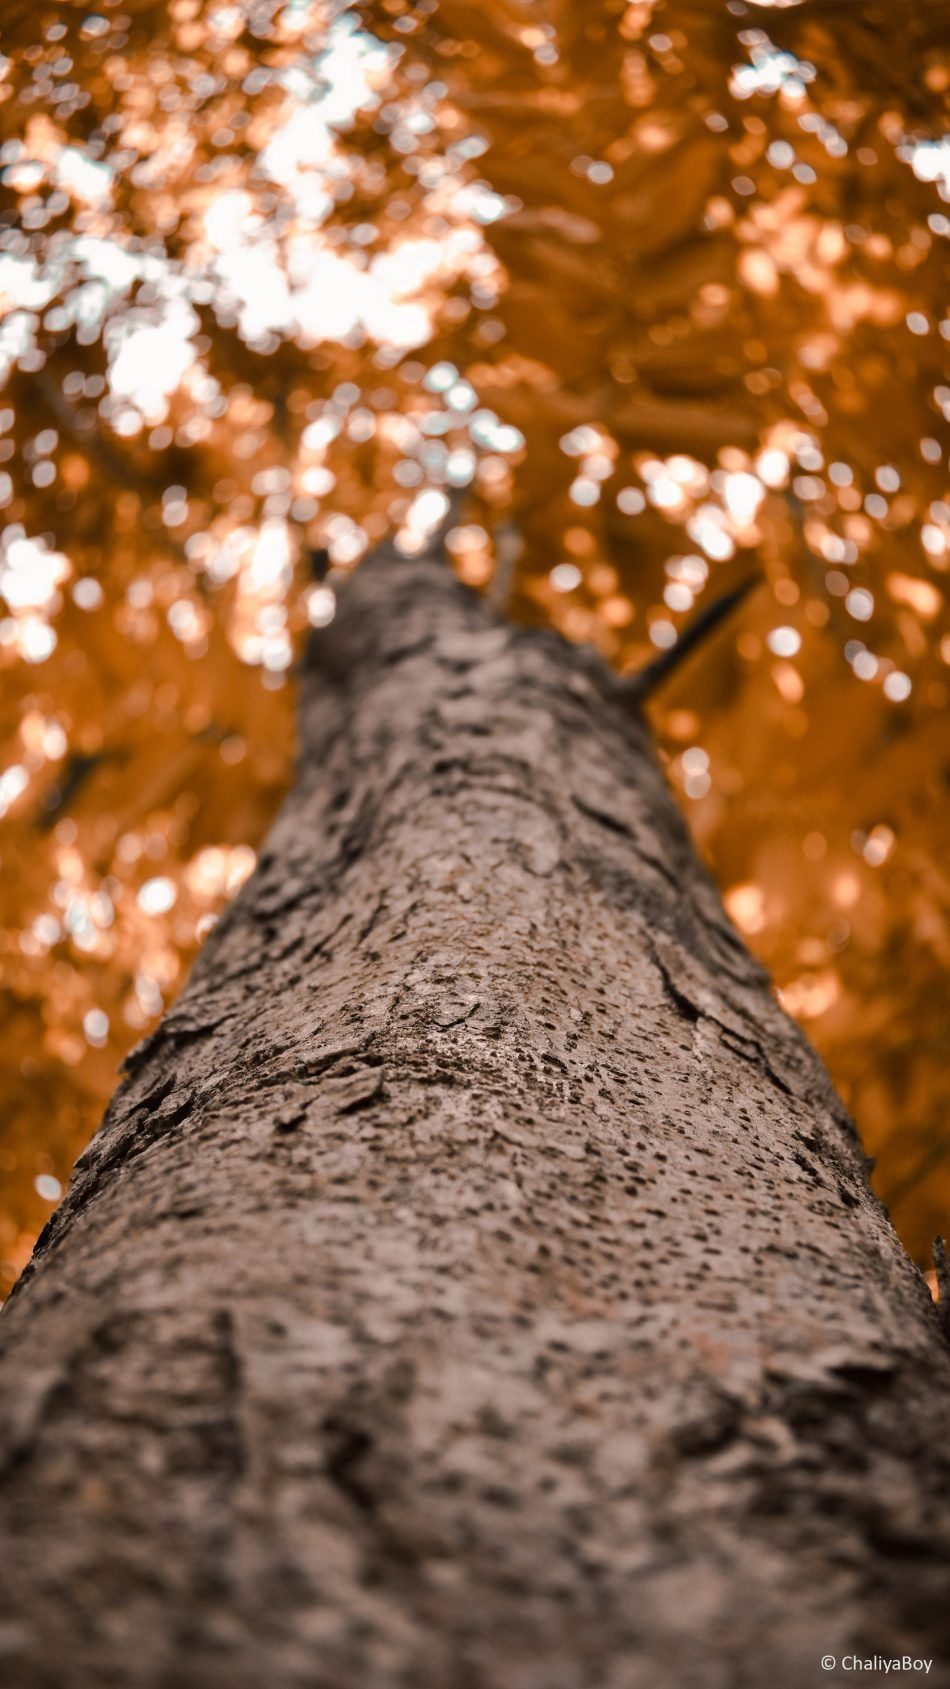 Tree Looking Up Photography 4k Ultra Hd Mobile Wallpaper Photography 4k Photography Wallpaper Photography